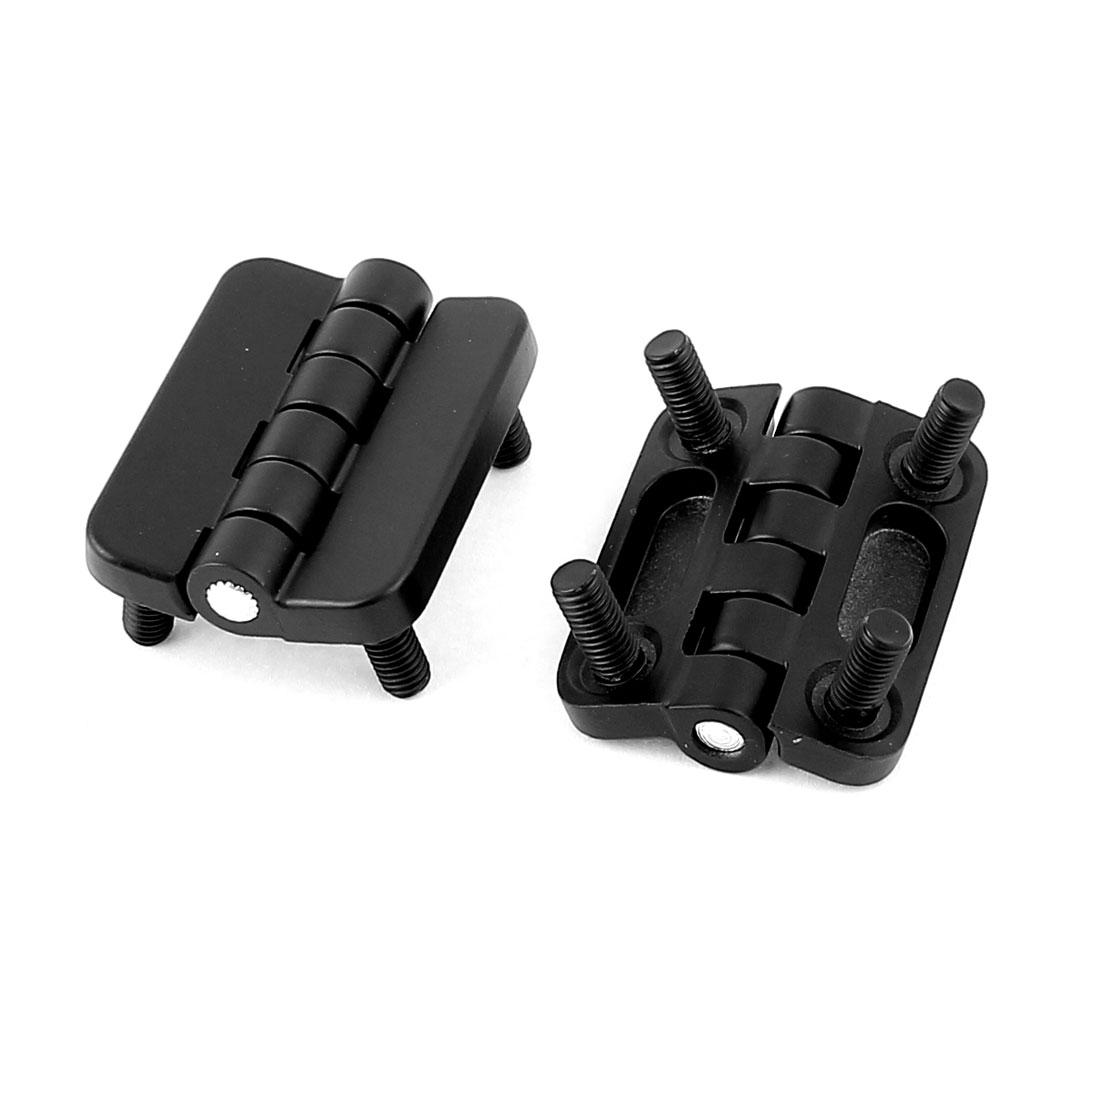 Household Screw On Type Metal Cabinet Closet Door Butt Hinge Black 2pcs